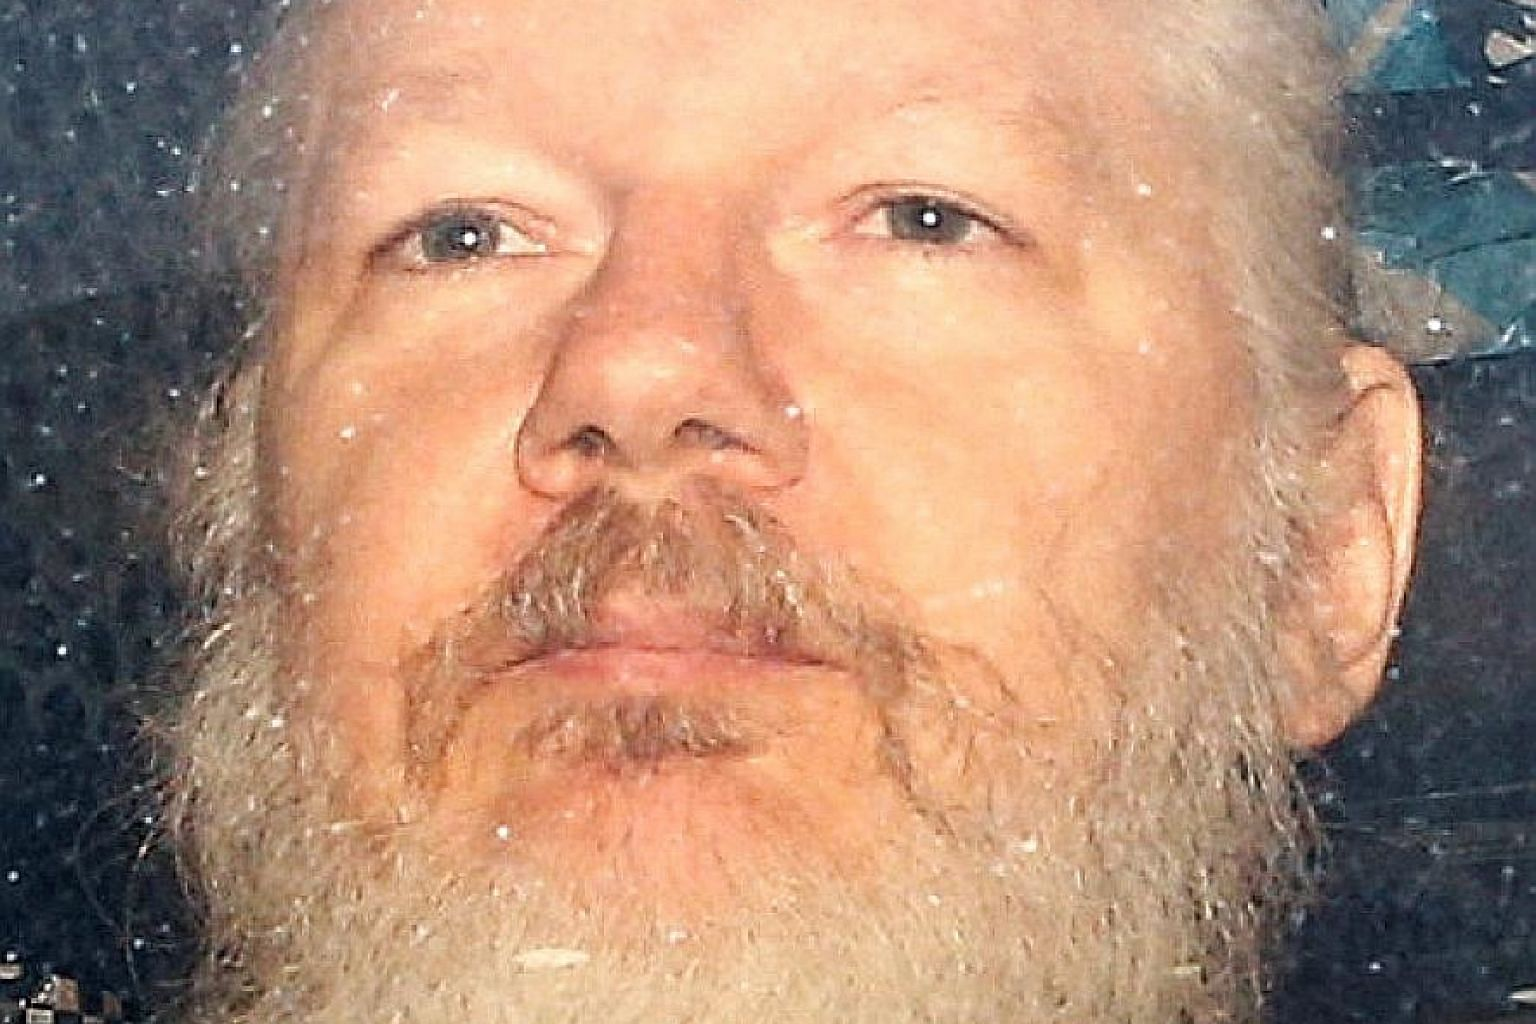 WikiLeaks founder Julian Assange was arrested last week in London and awaits his extradition hearing.